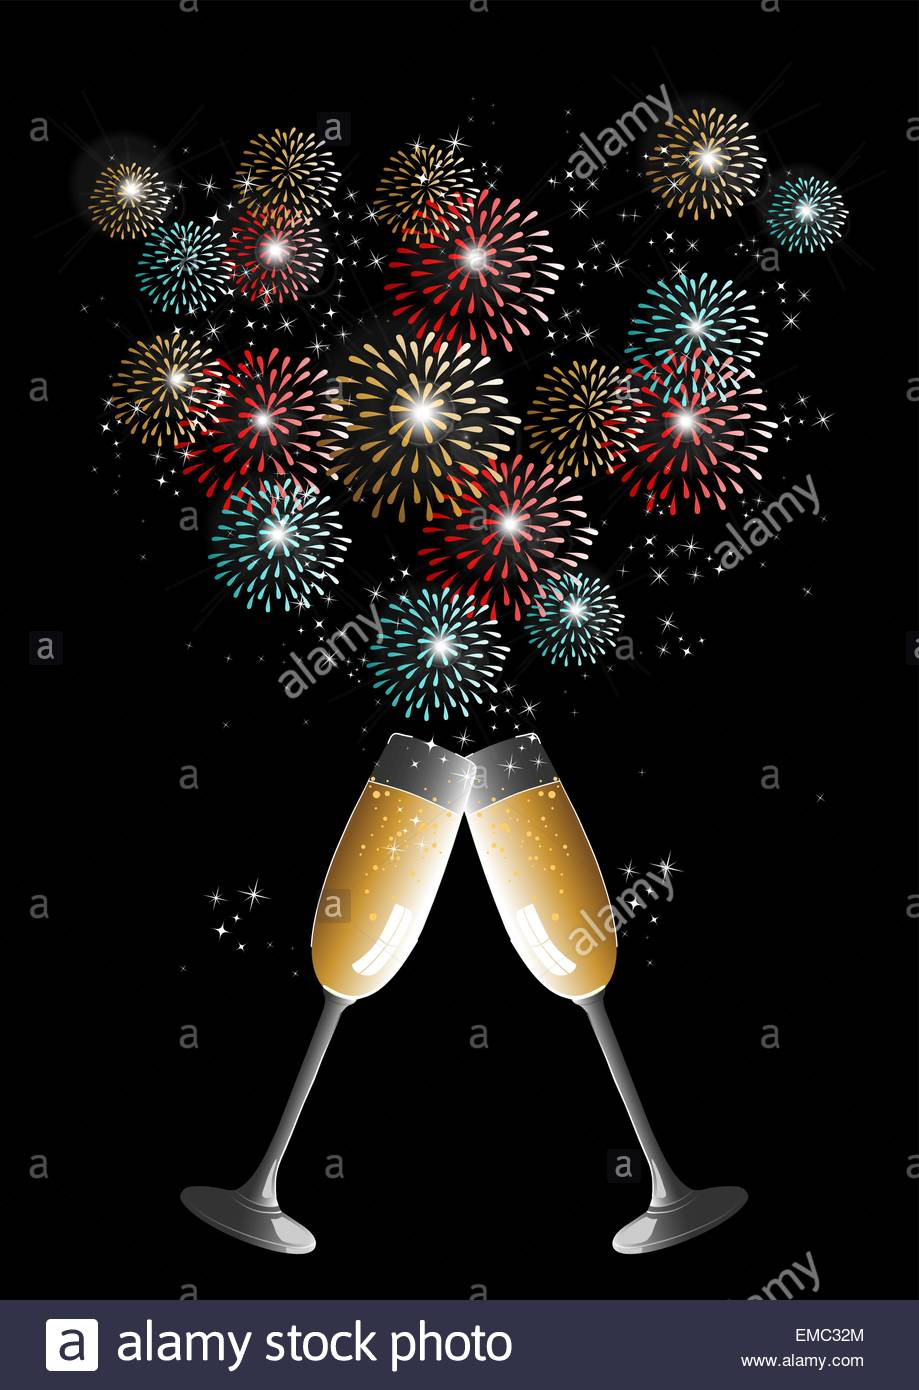 Happy new year 2014 champagne fireworks greeting card stock vector happy new year 2014 champagne fireworks greeting card m4hsunfo